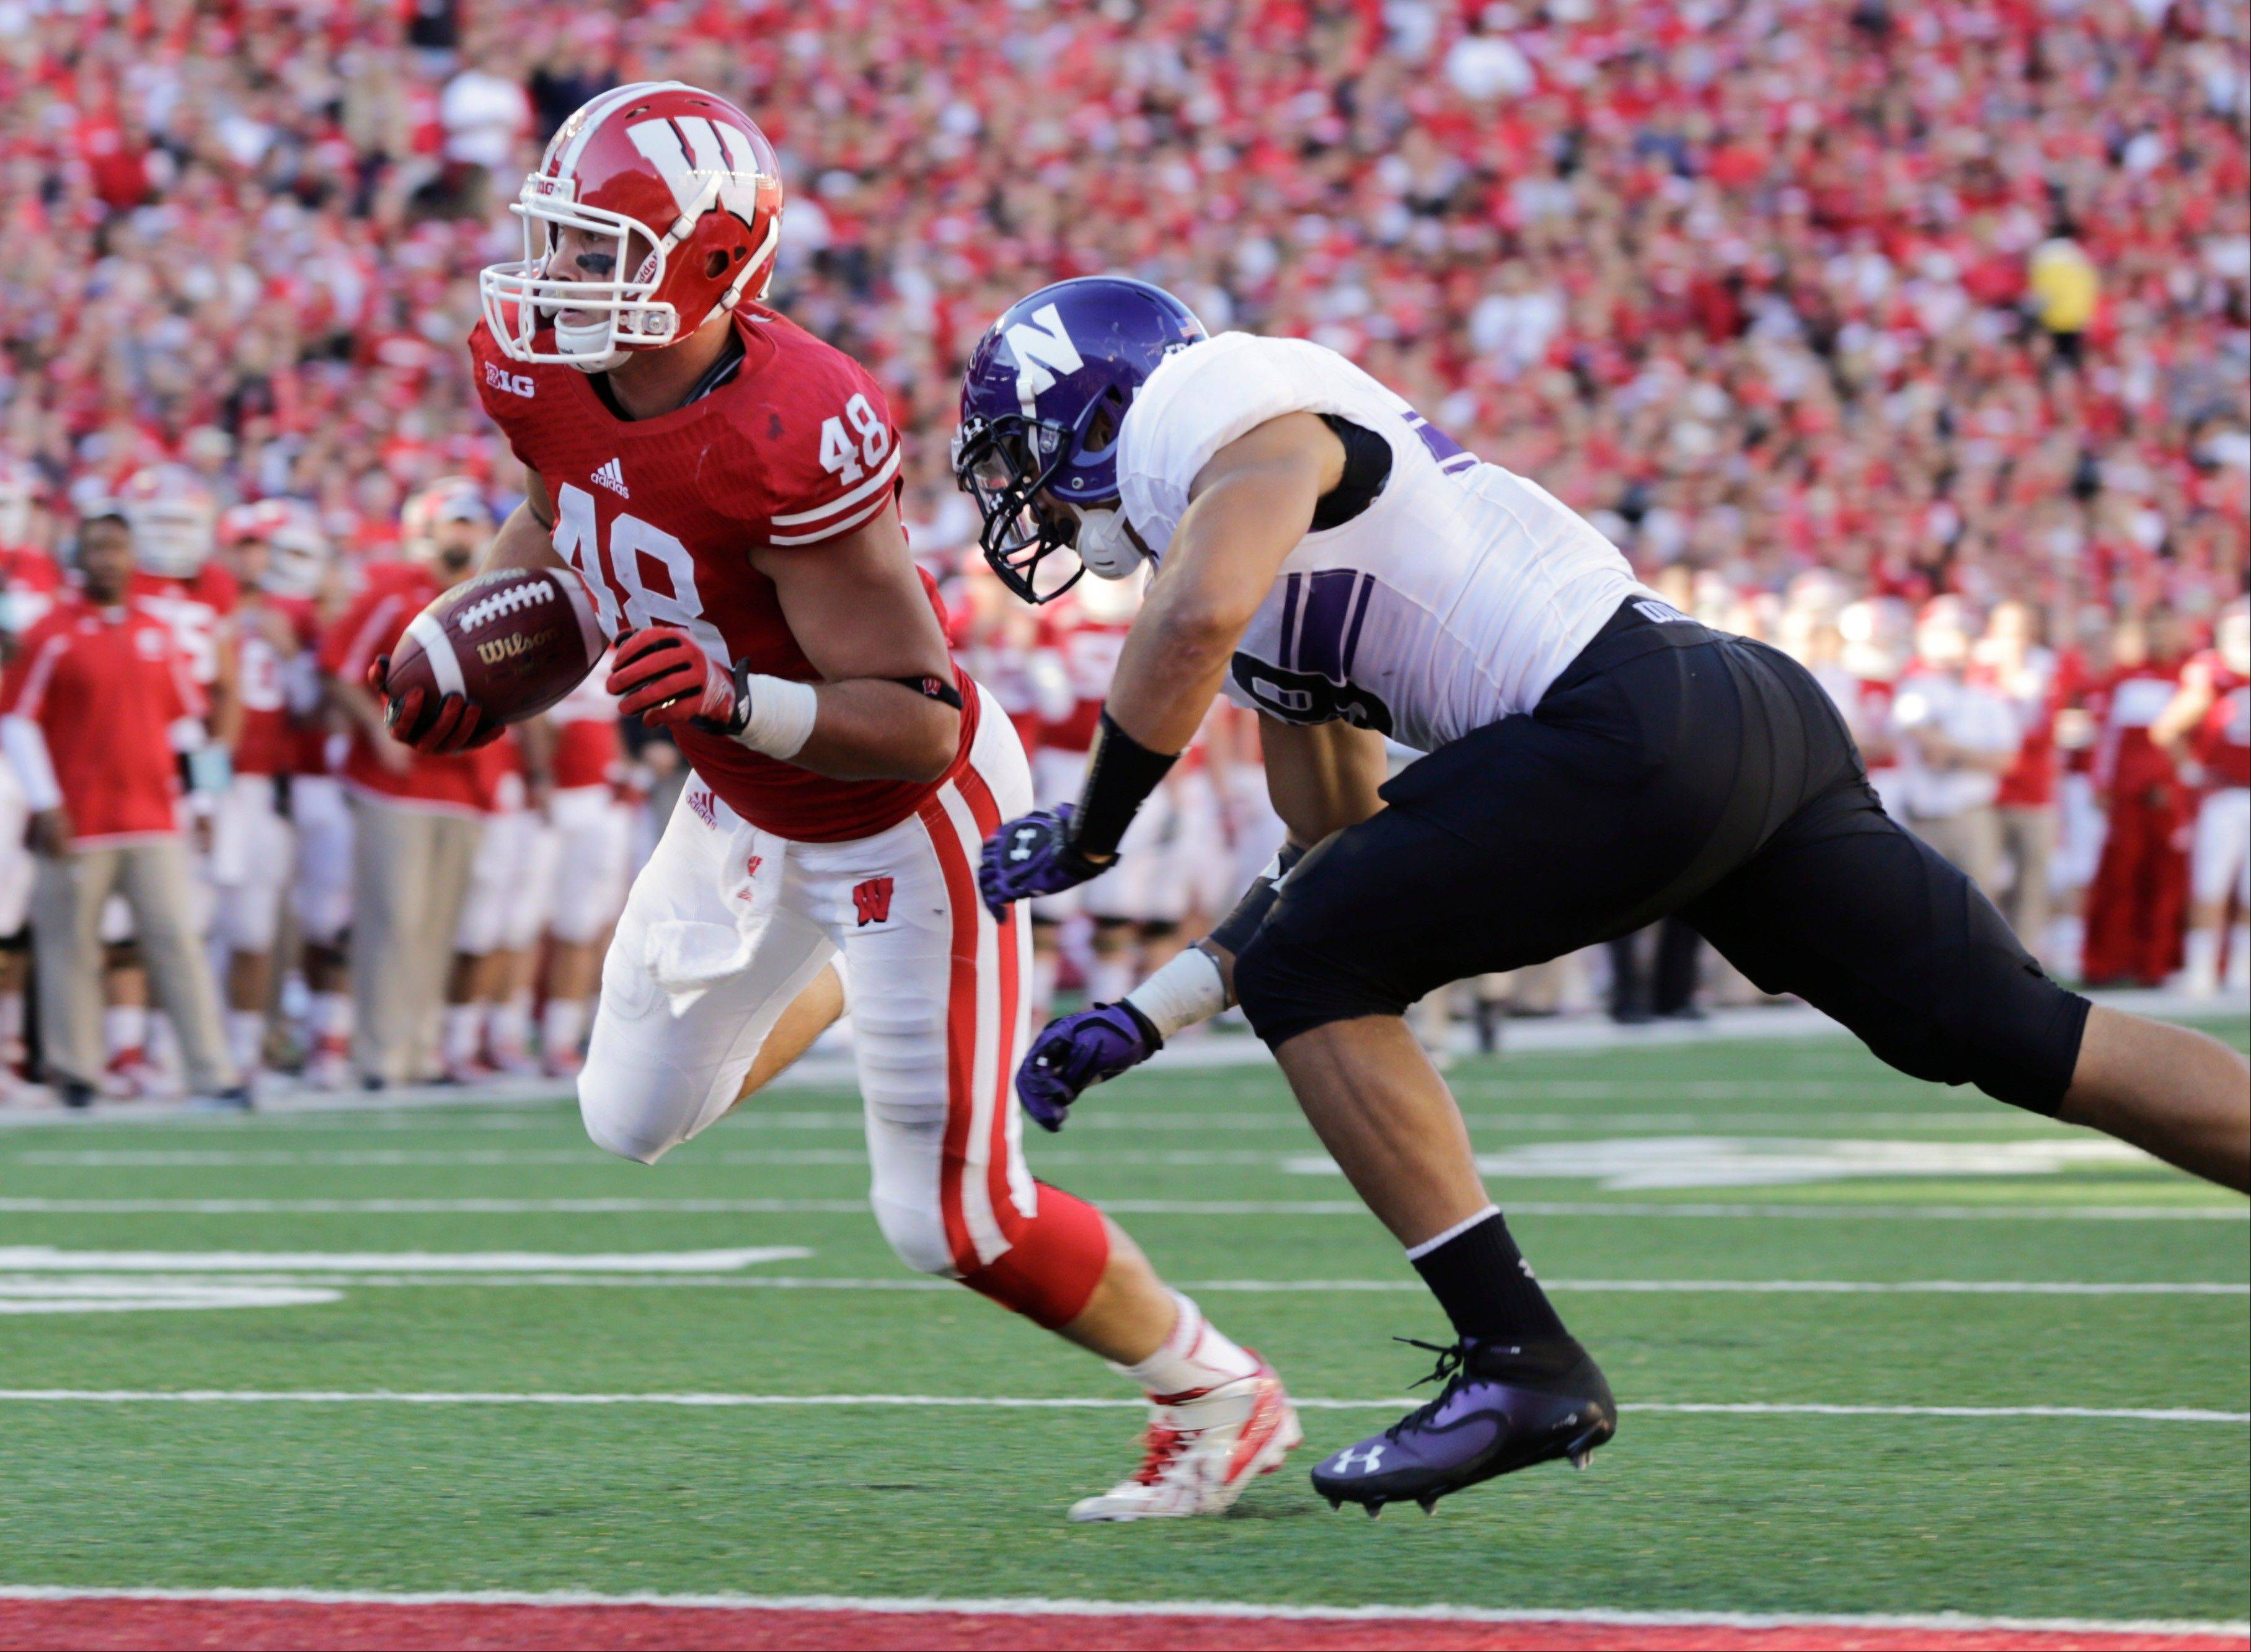 Wisconsin tight end Jacob Pedersen runs in for a 1-yard touchdown against Northwestern safety Jimmy Hall during the second half of Saturday's game in Madison. Wisconsin upset Northwestern 35-6.